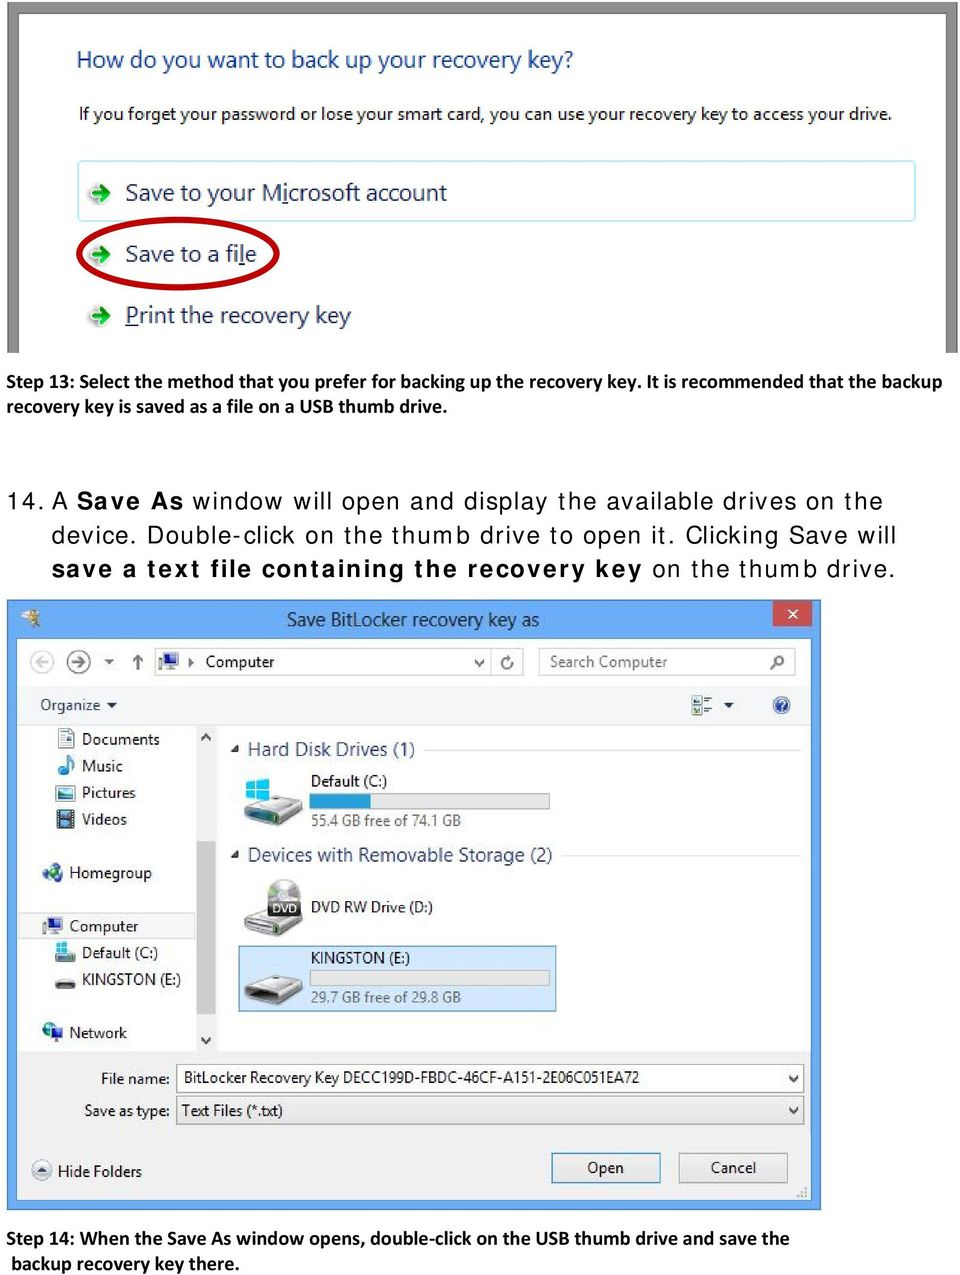 A Save As window will open and display the available drives on the device. Double-click on the thumb drive to open it.